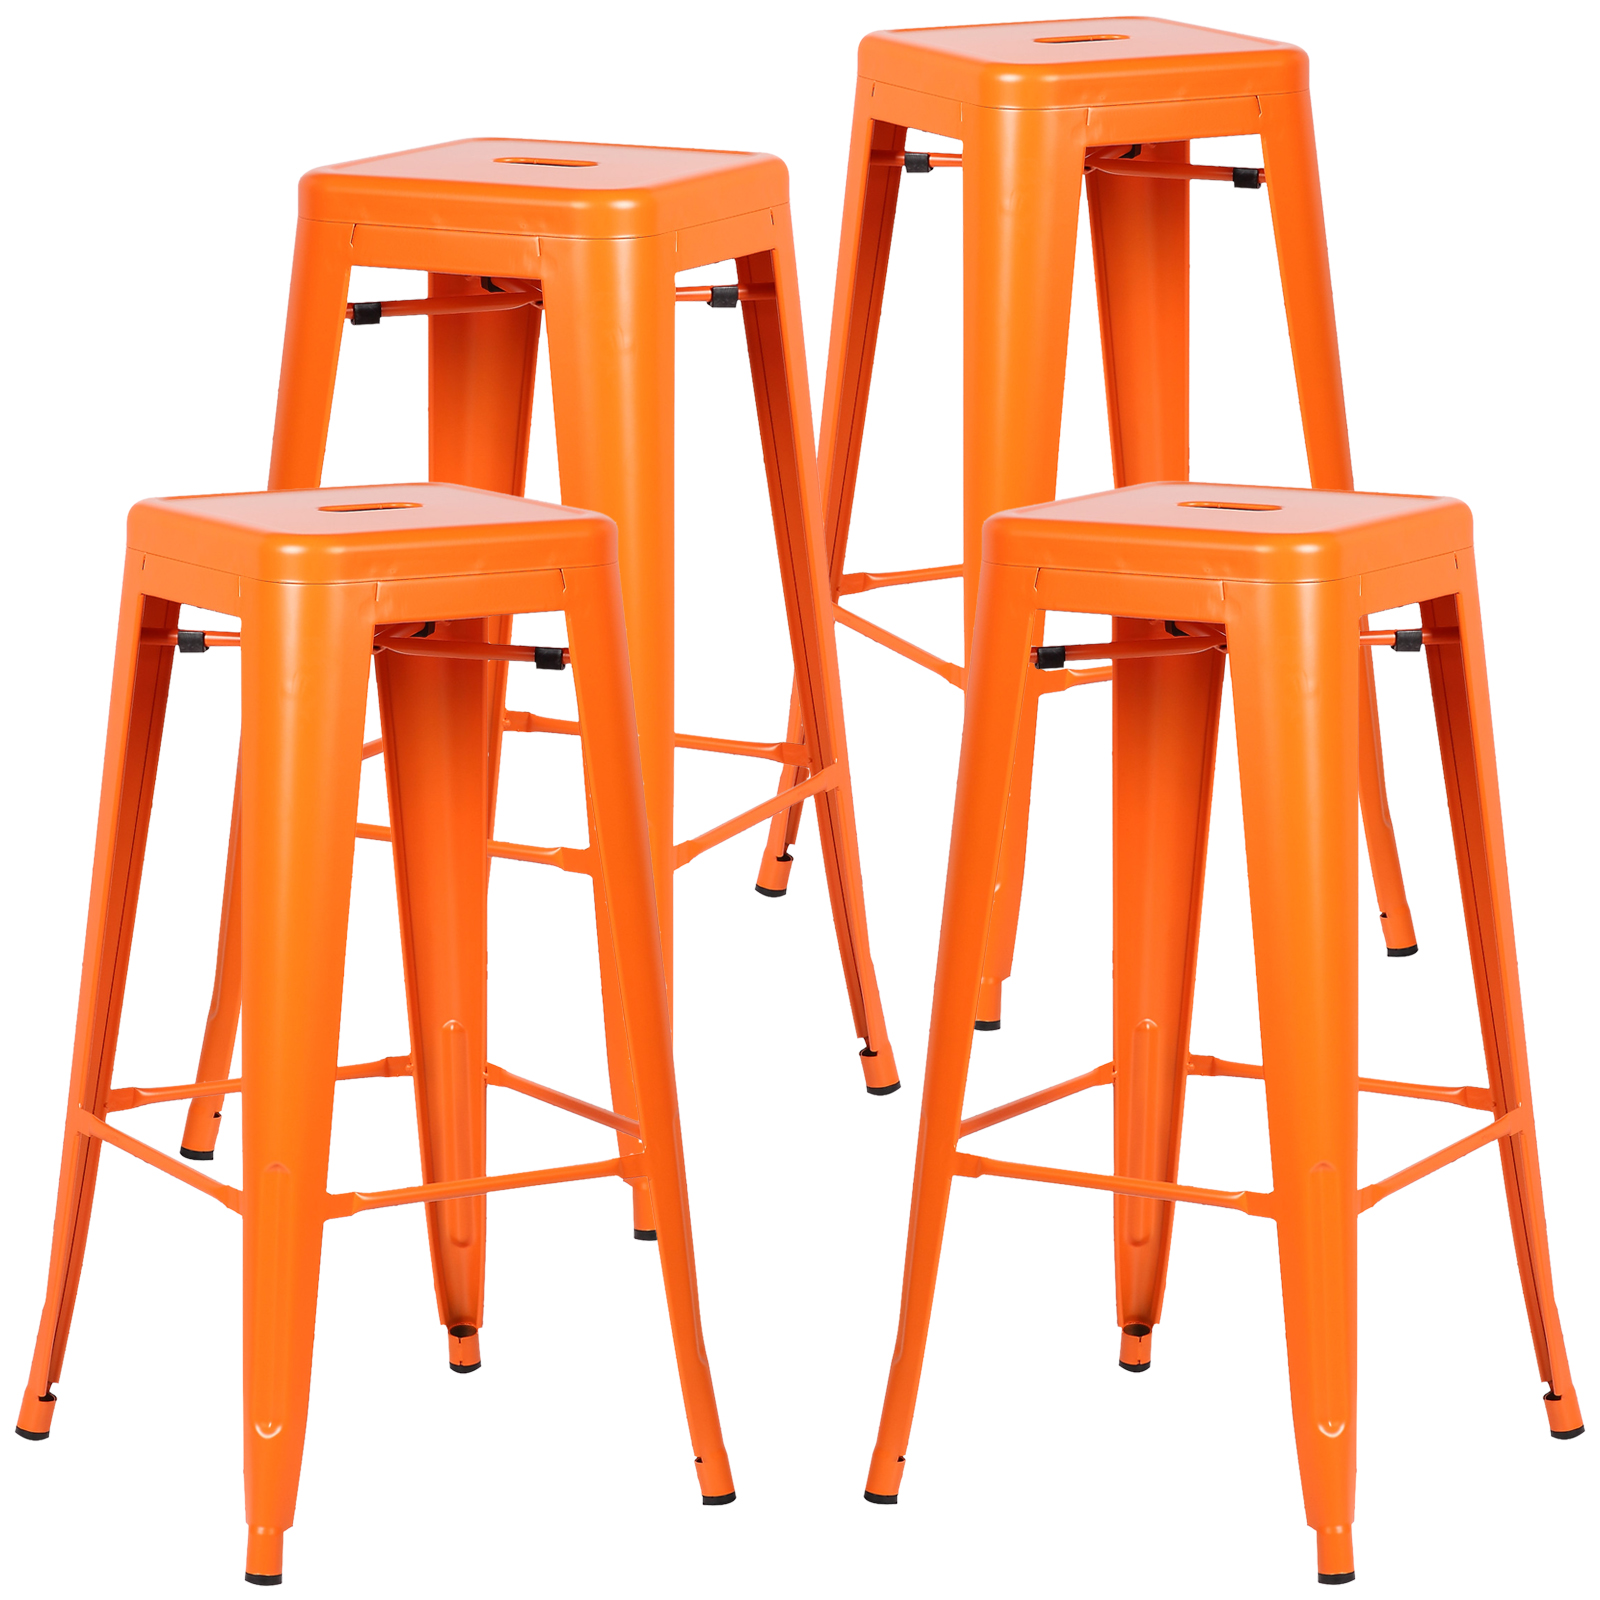 Poly and Bark Trattoria Bar Stool in Orange (Set of 4)